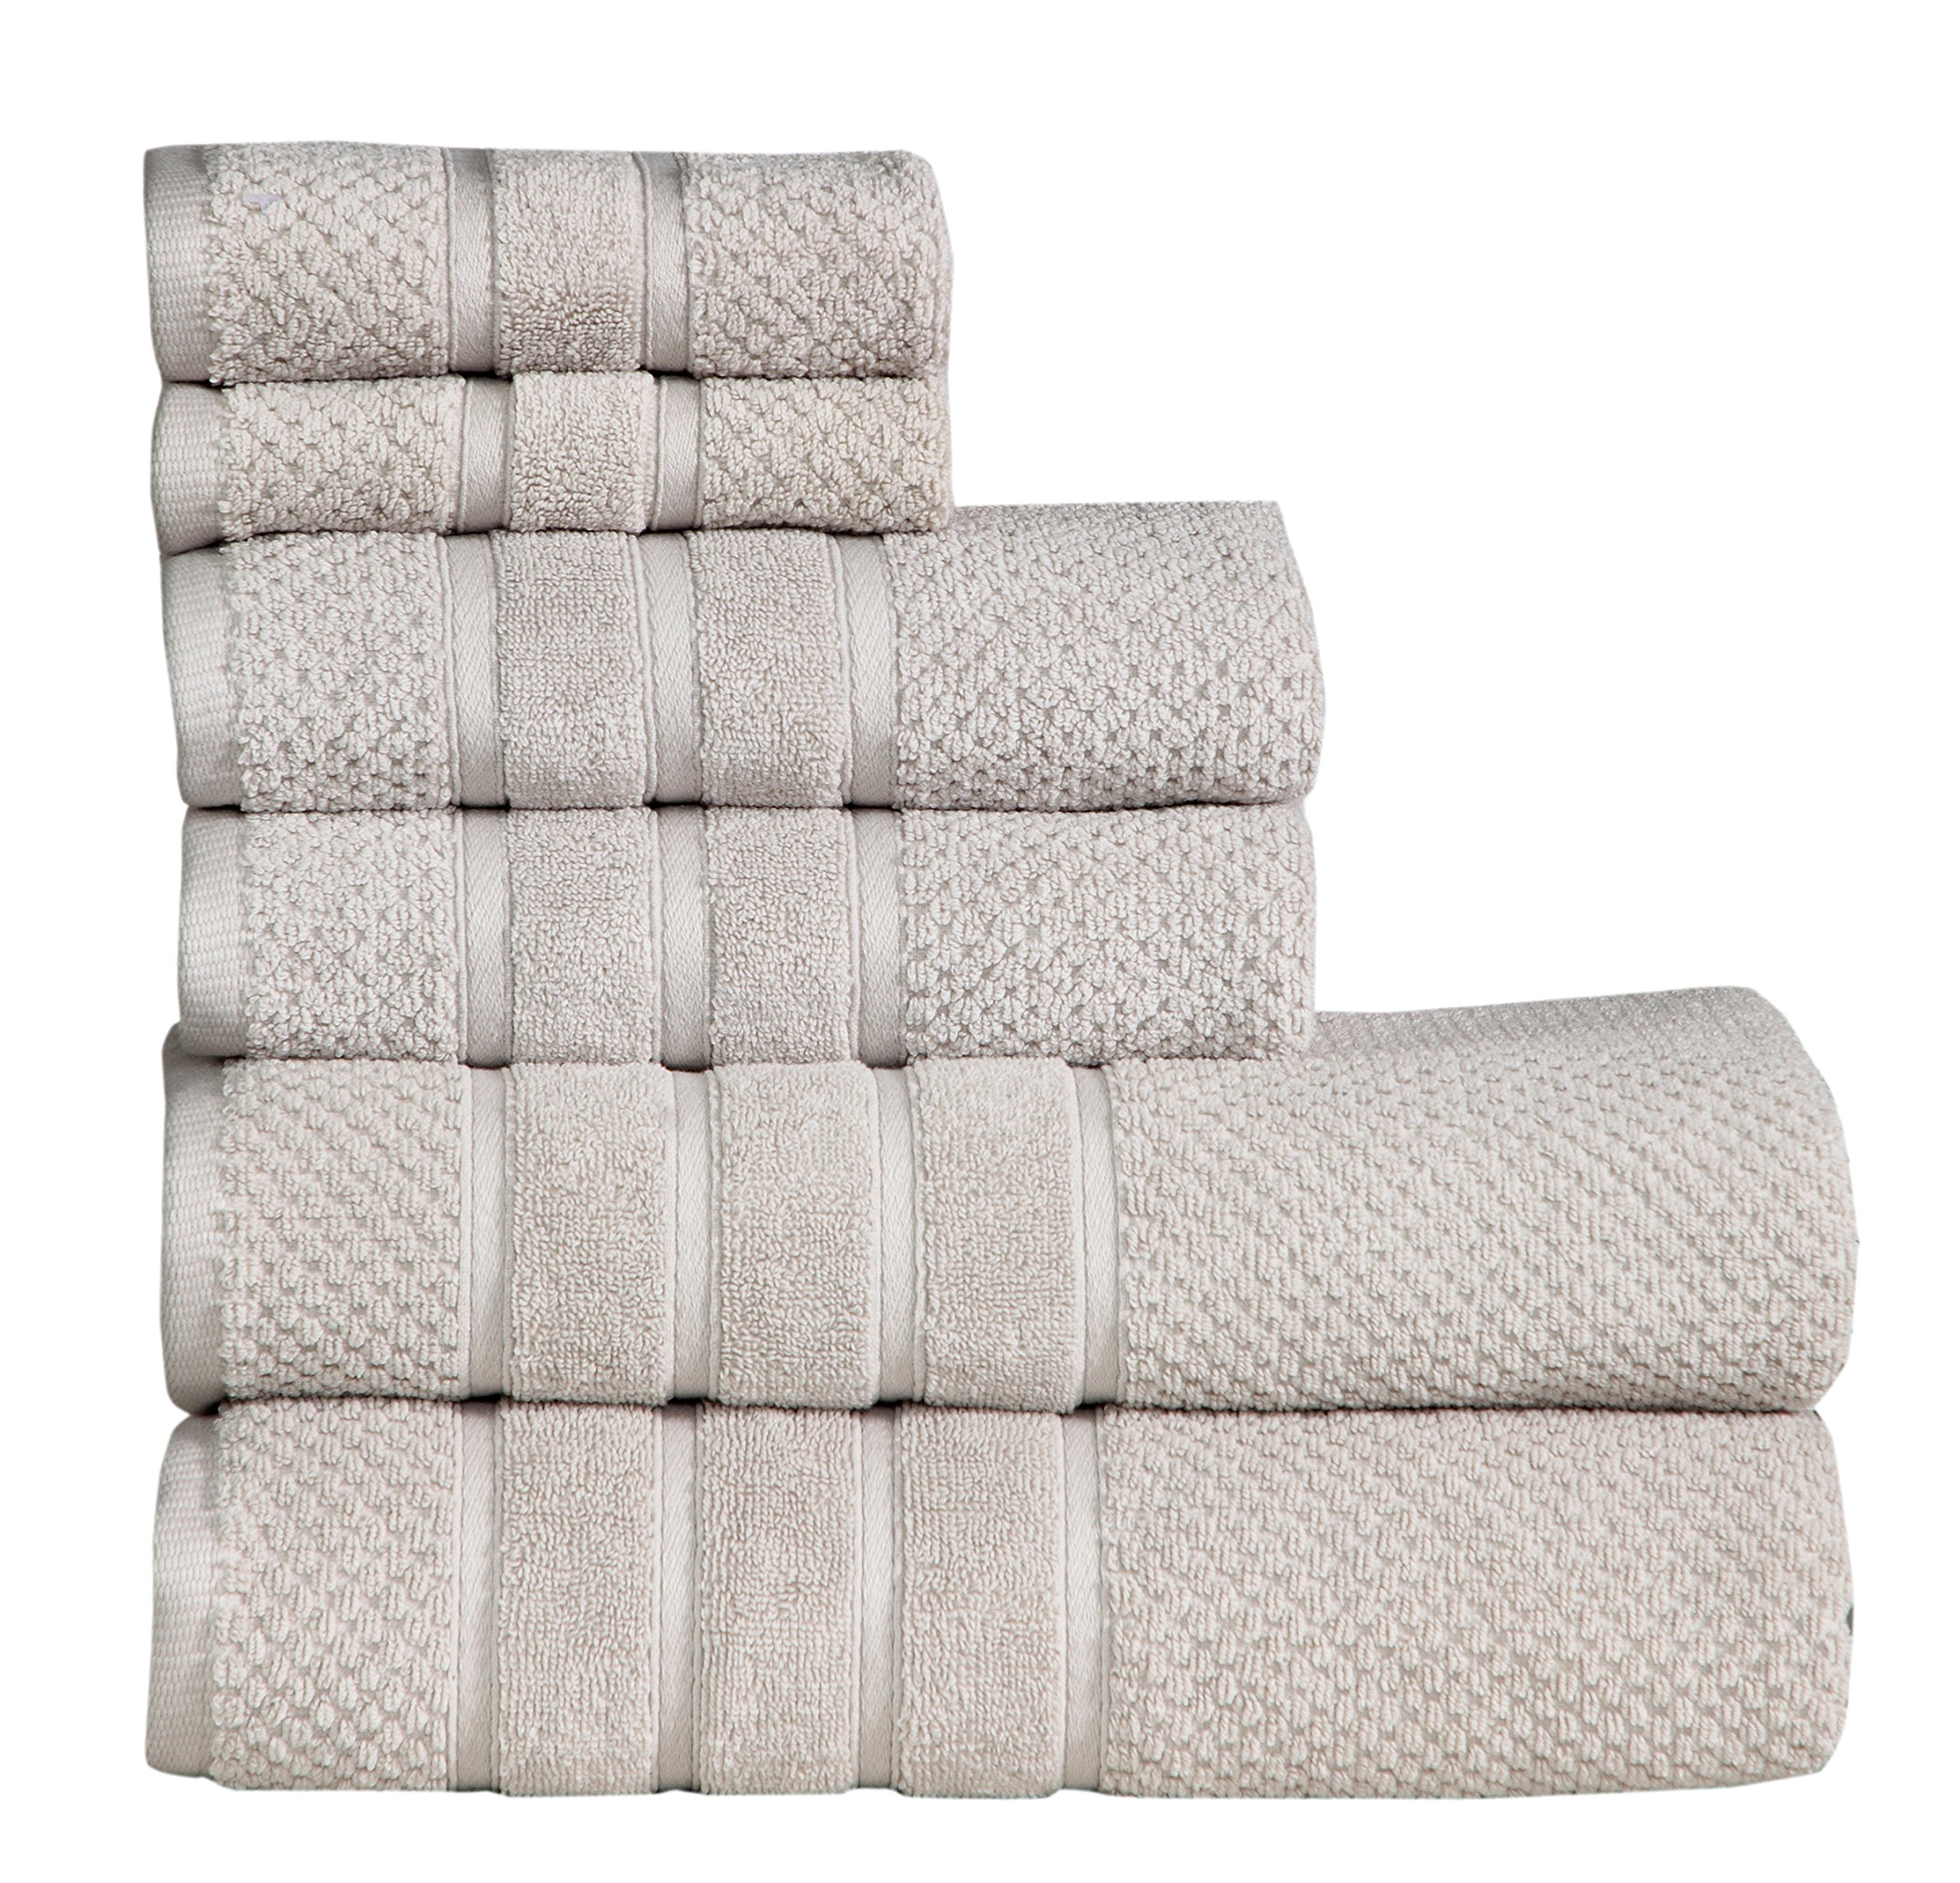 Feather & Stitch Fade-Resistant 100% Cotton 6-Piece Towel Set, Hotel Quality, Super Soft and Highly Absorbent (Vapon, 6 Pack Set)